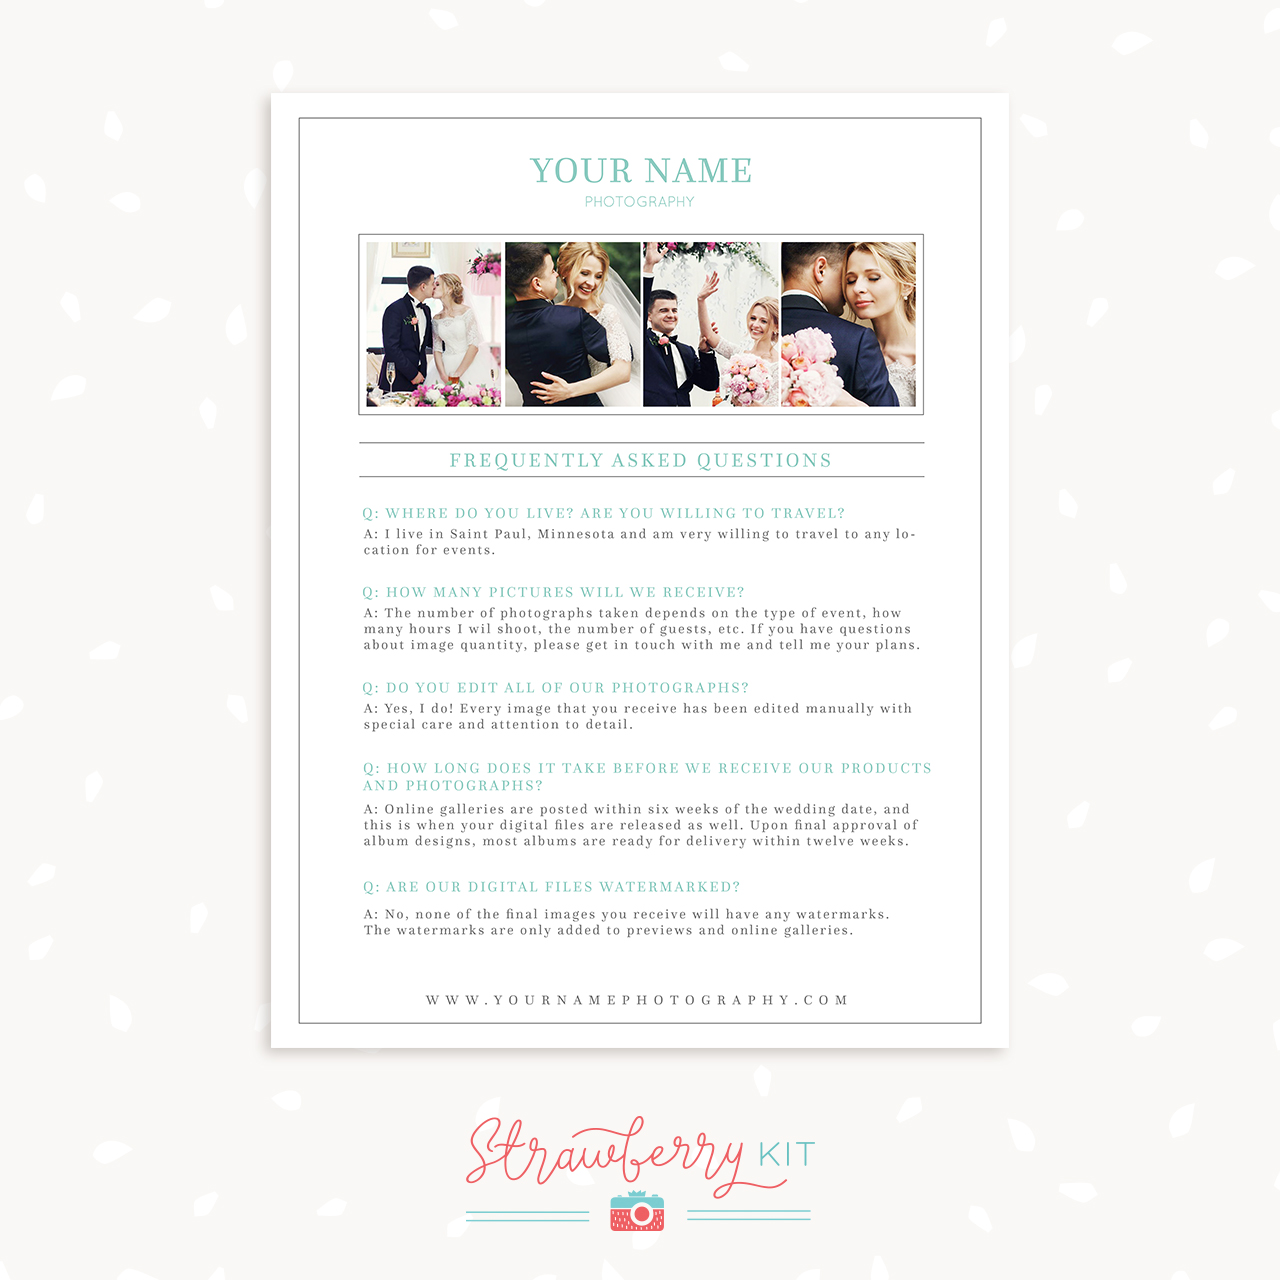 Frequently asked questions template for photographers strawberry kit faq template photographers maxwellsz